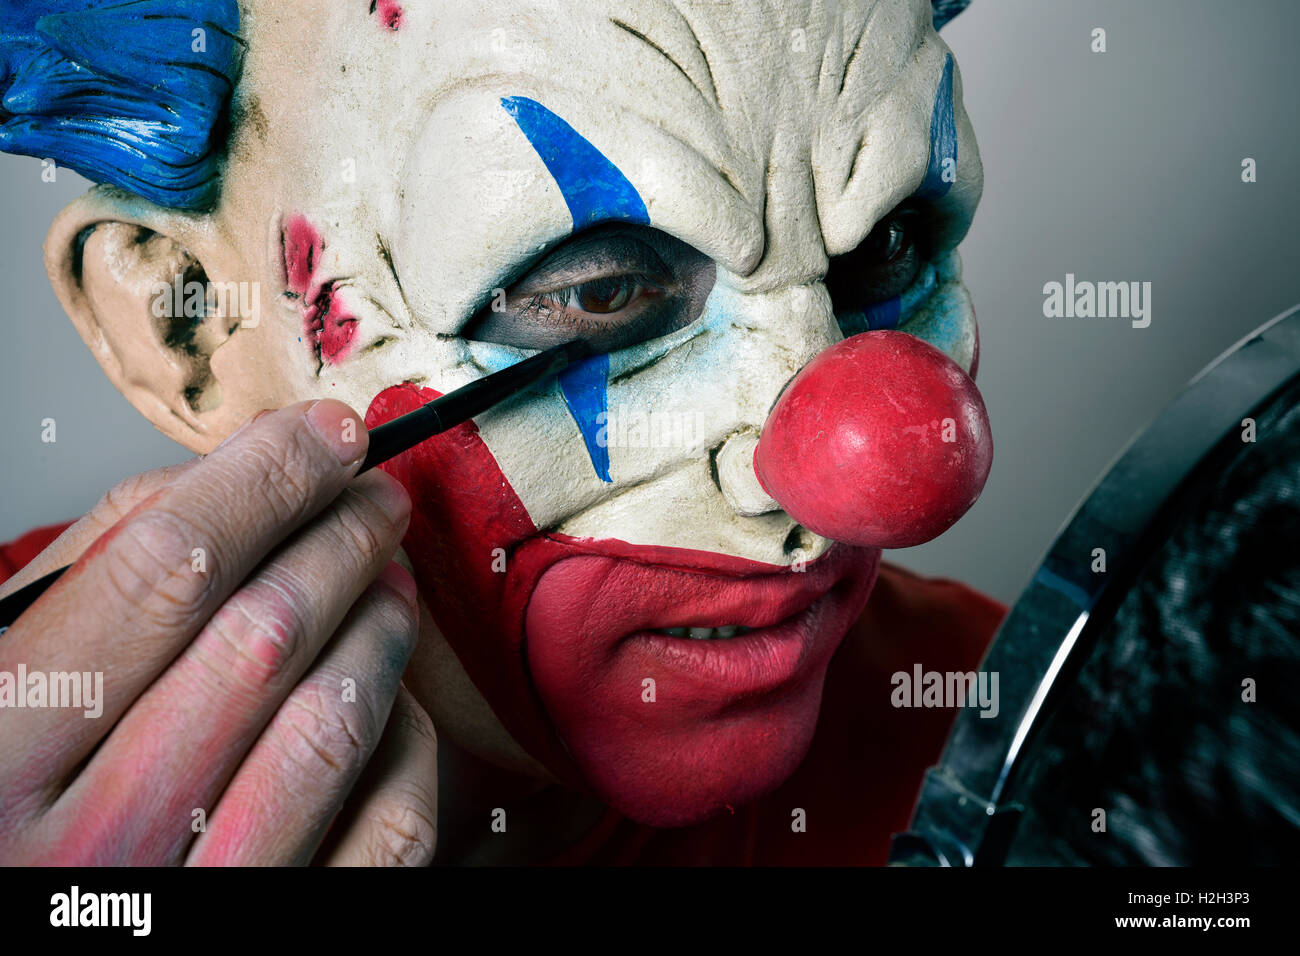 closeup of a young man making up himself as an evil clown, using a mirror - Stock Image